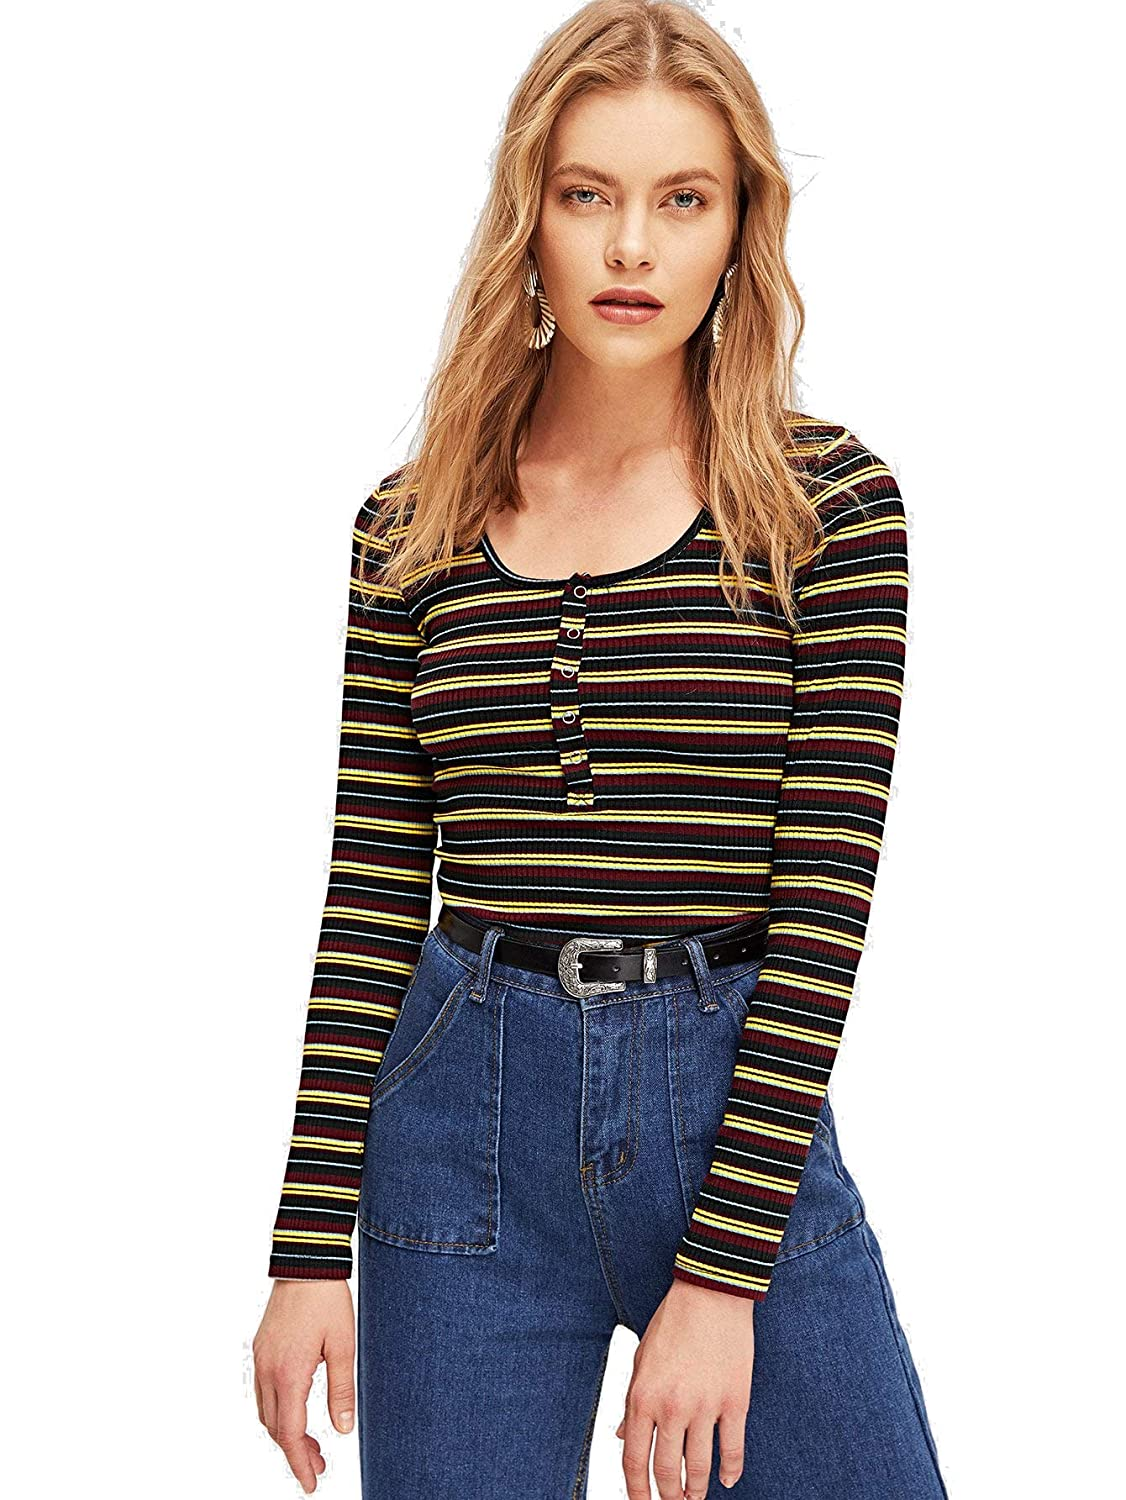 Bmulti4 Milumia Women's Casual Striped Ribbed Tee Knit Crop Top